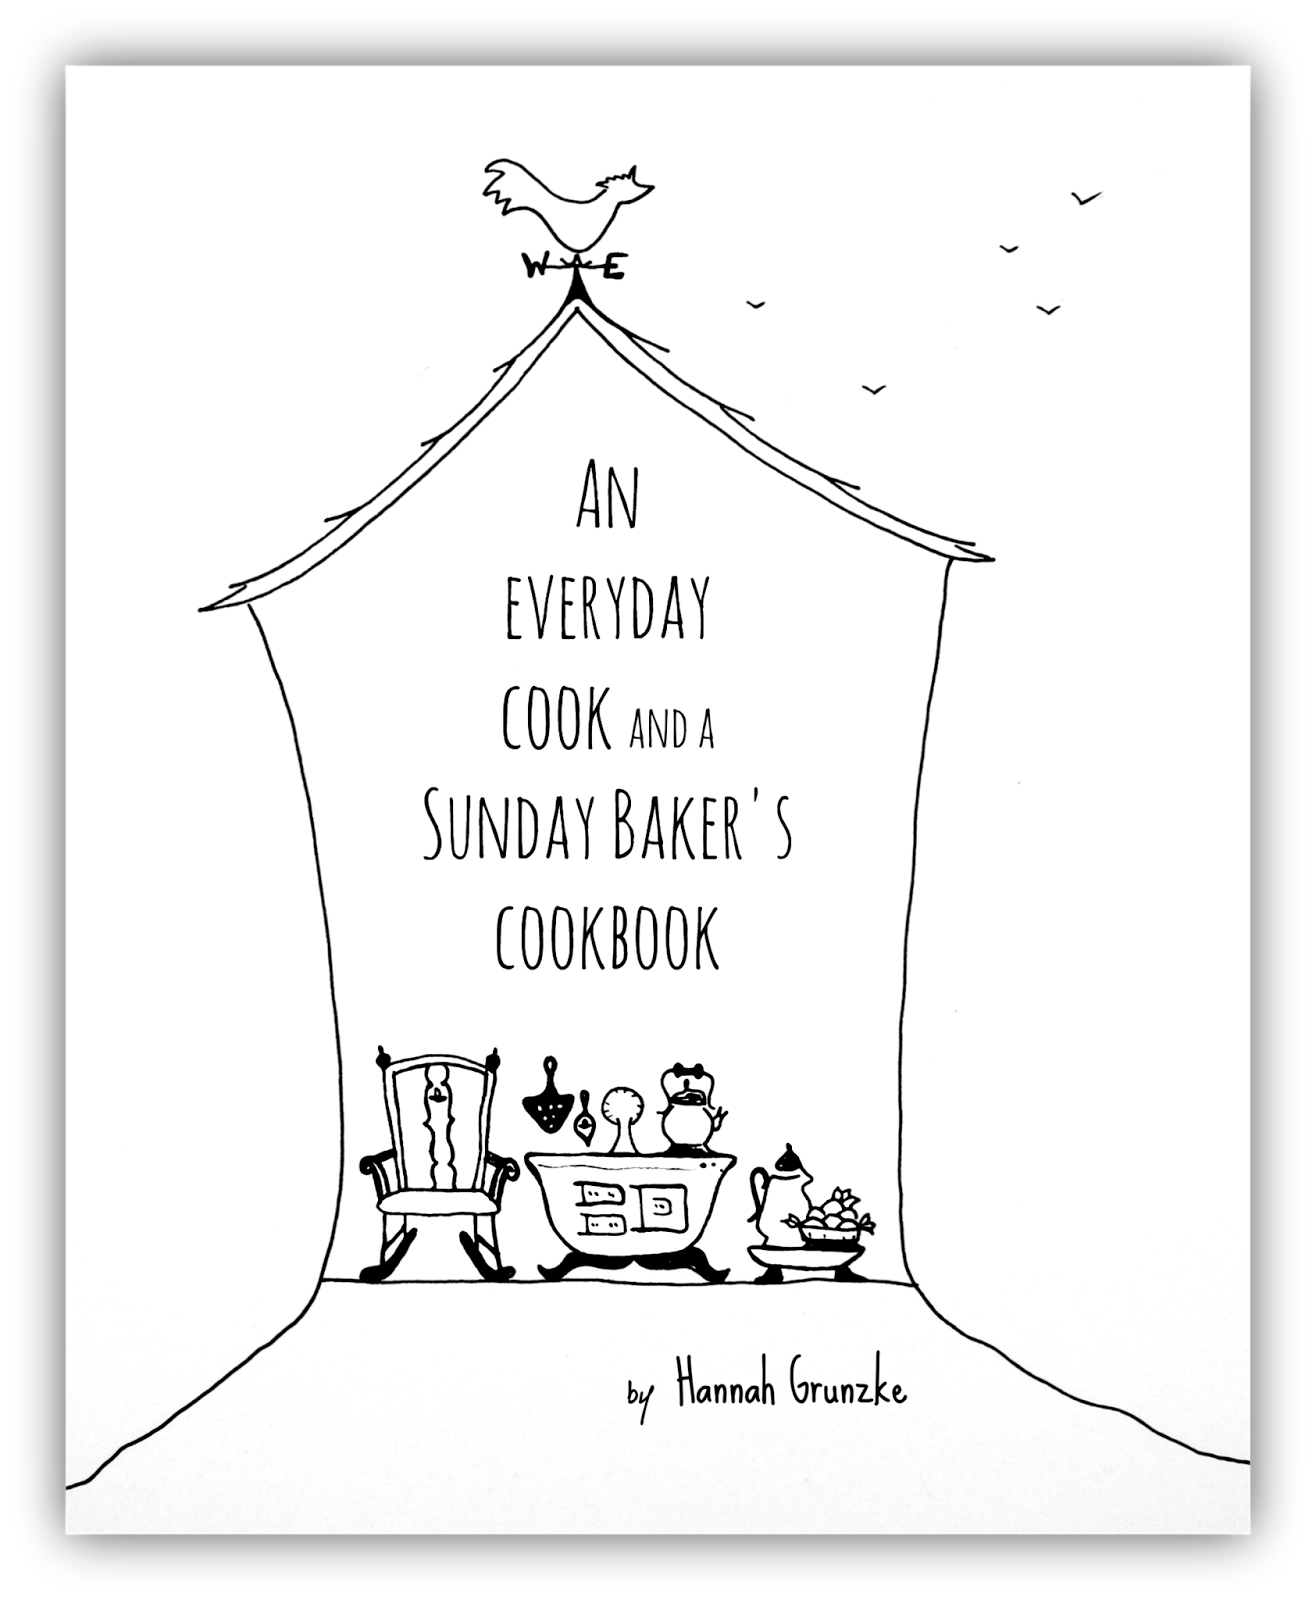 Cookbook Cover Template : Cookbook covers clipart suggest